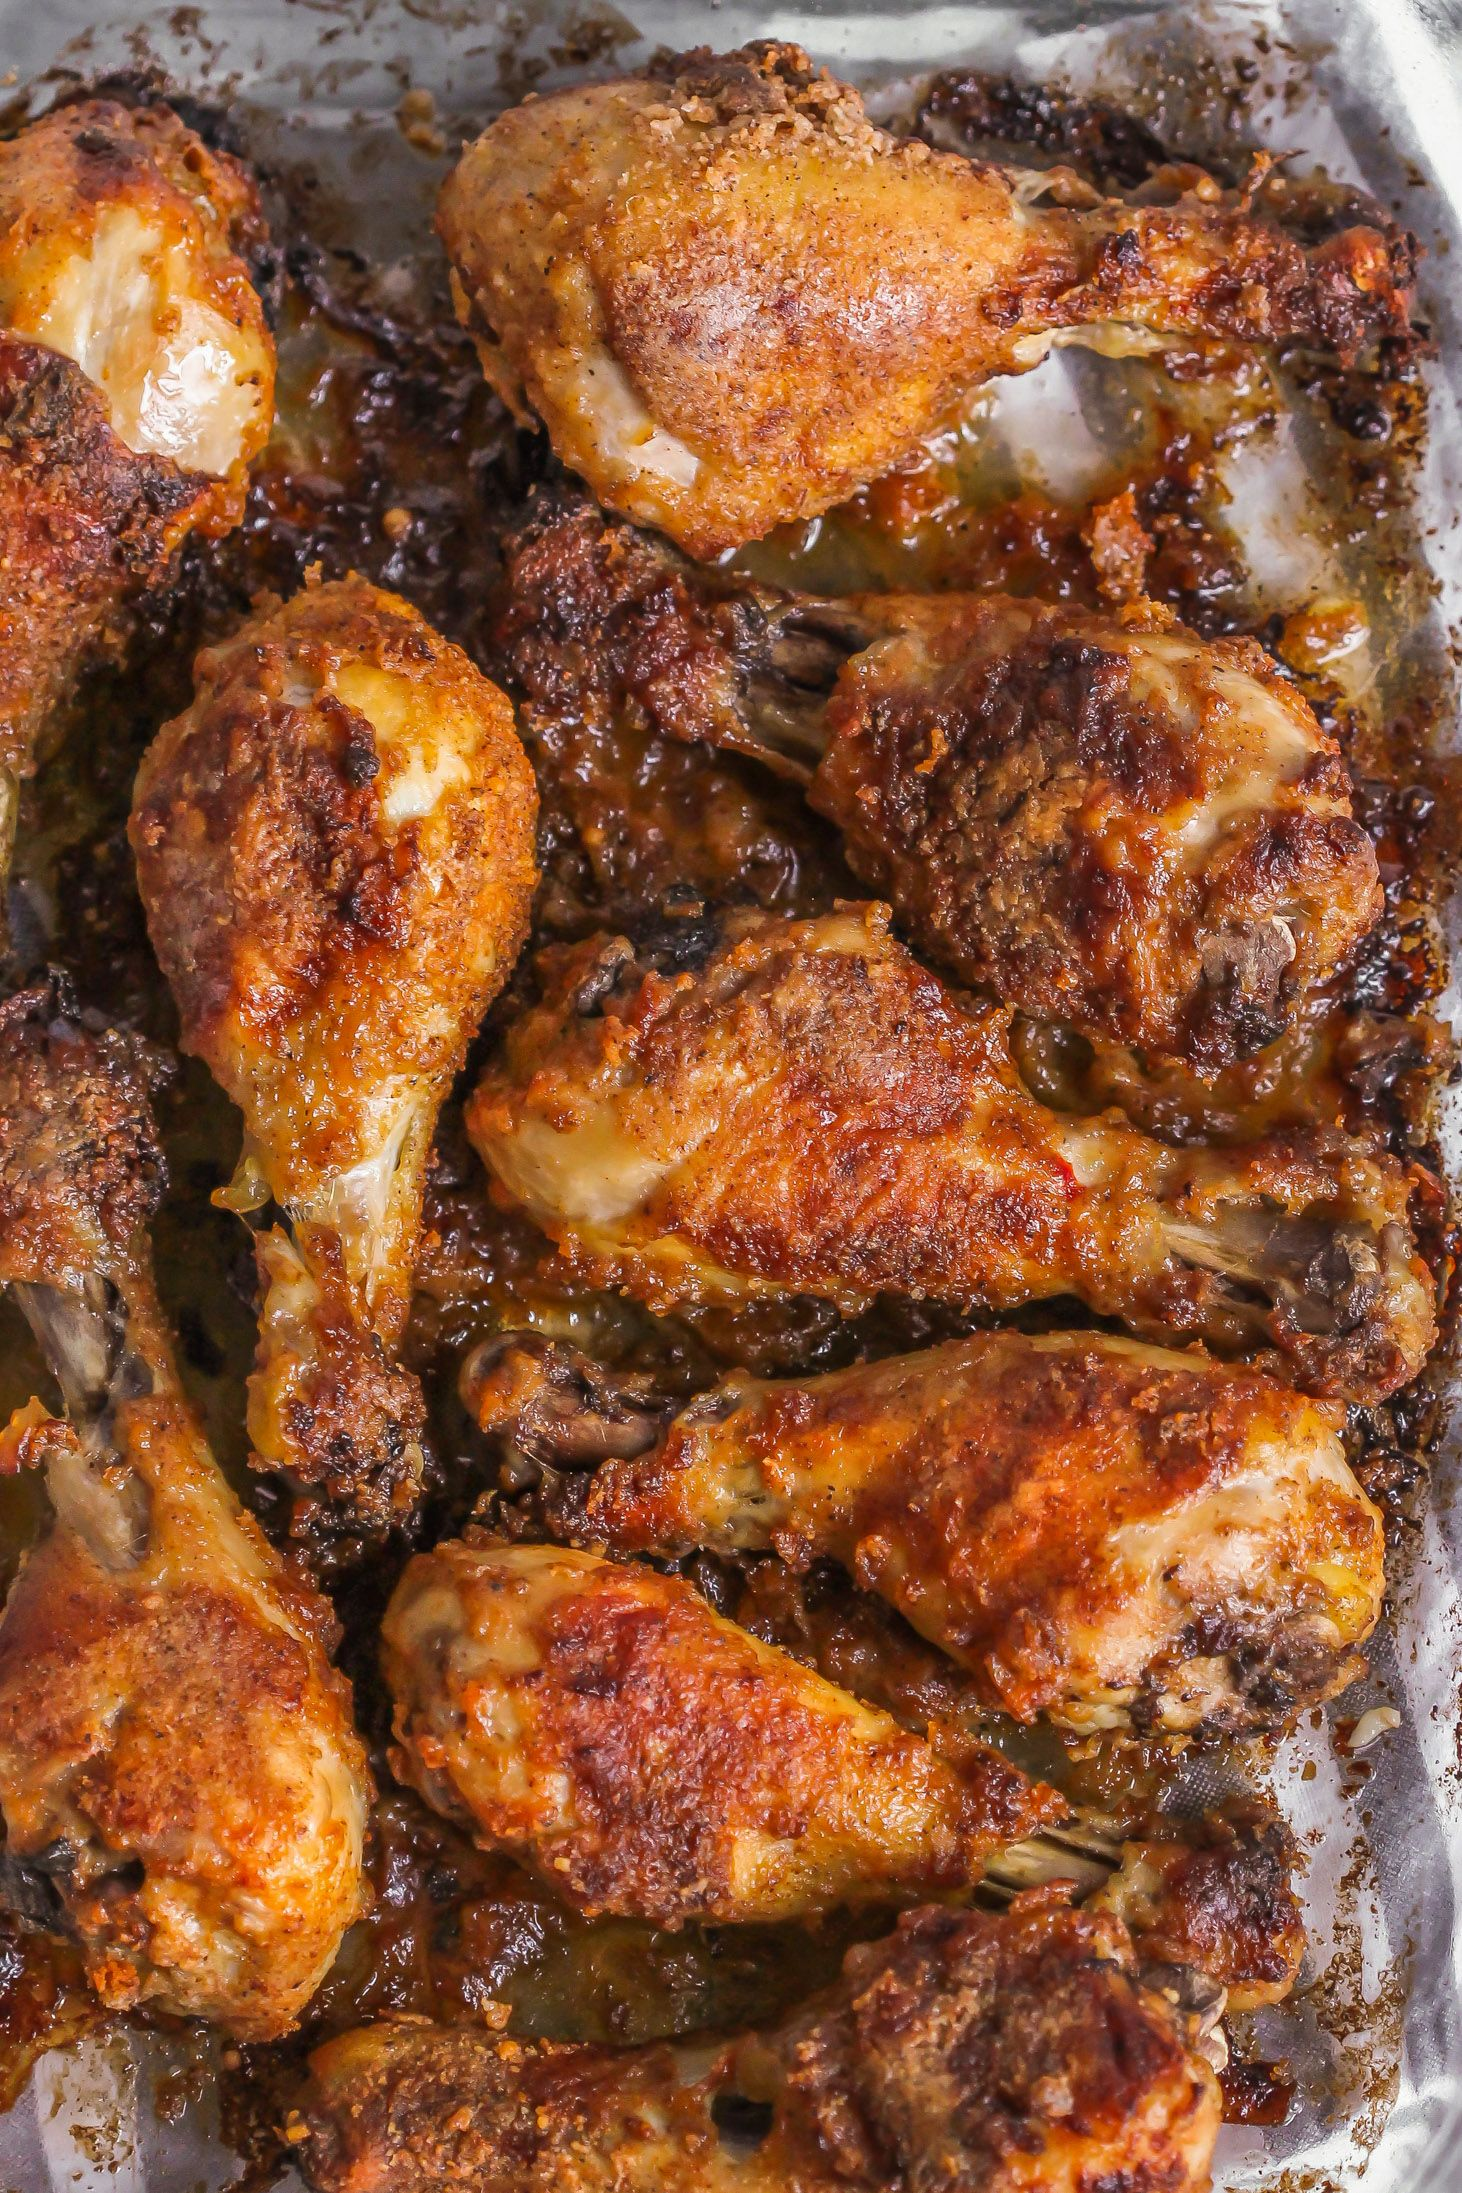 Baked Chicken Drumsticks Oven Baked Delish Lil Luna Recipe Drumstick Recipes Oven Baked Chicken Legs Baked Chicken Legs